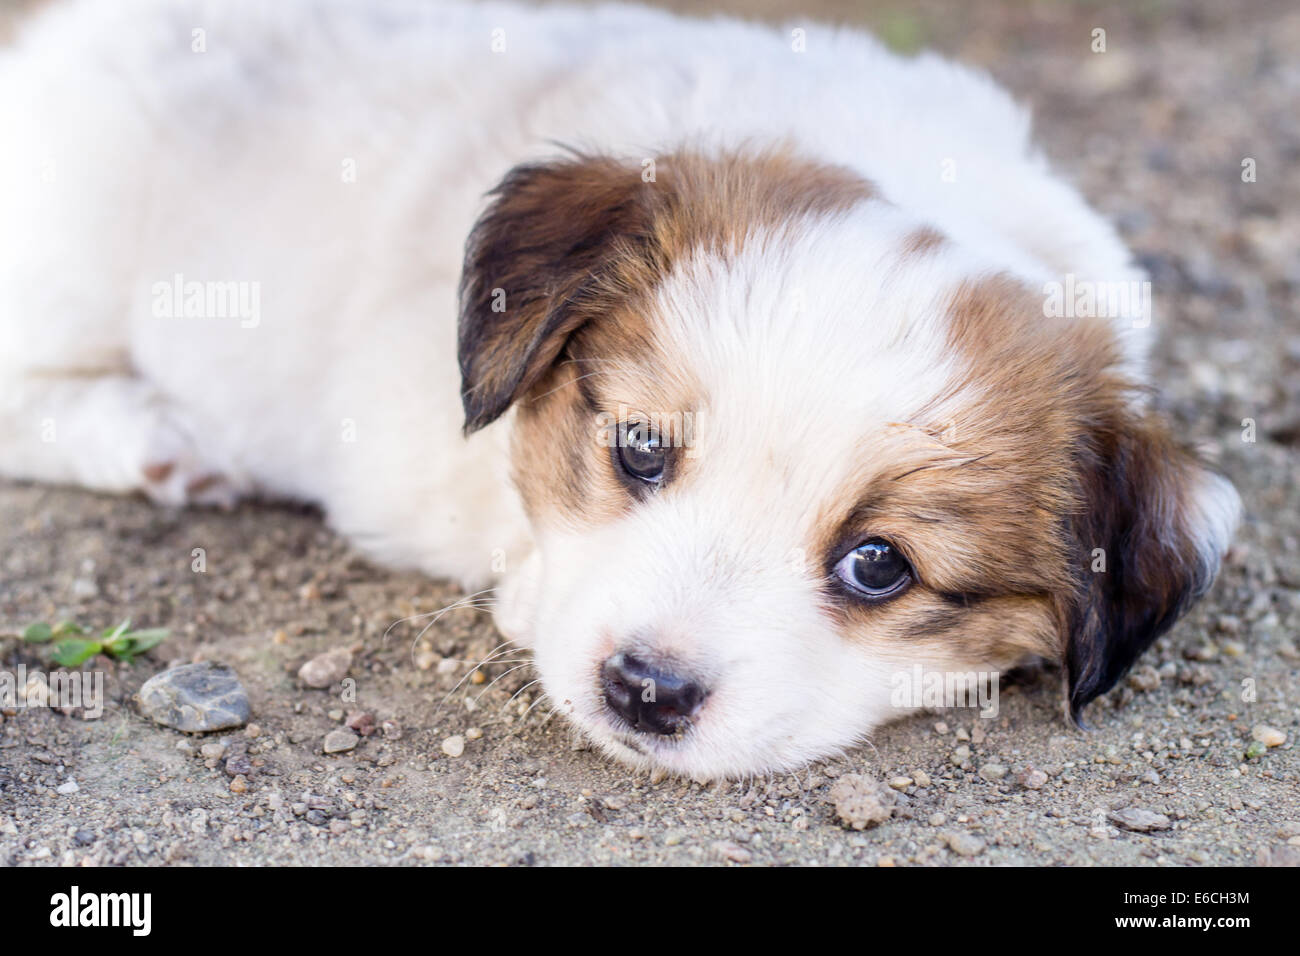 White Adorable Puppy With Brown Colored Ears Stock Photo Alamy